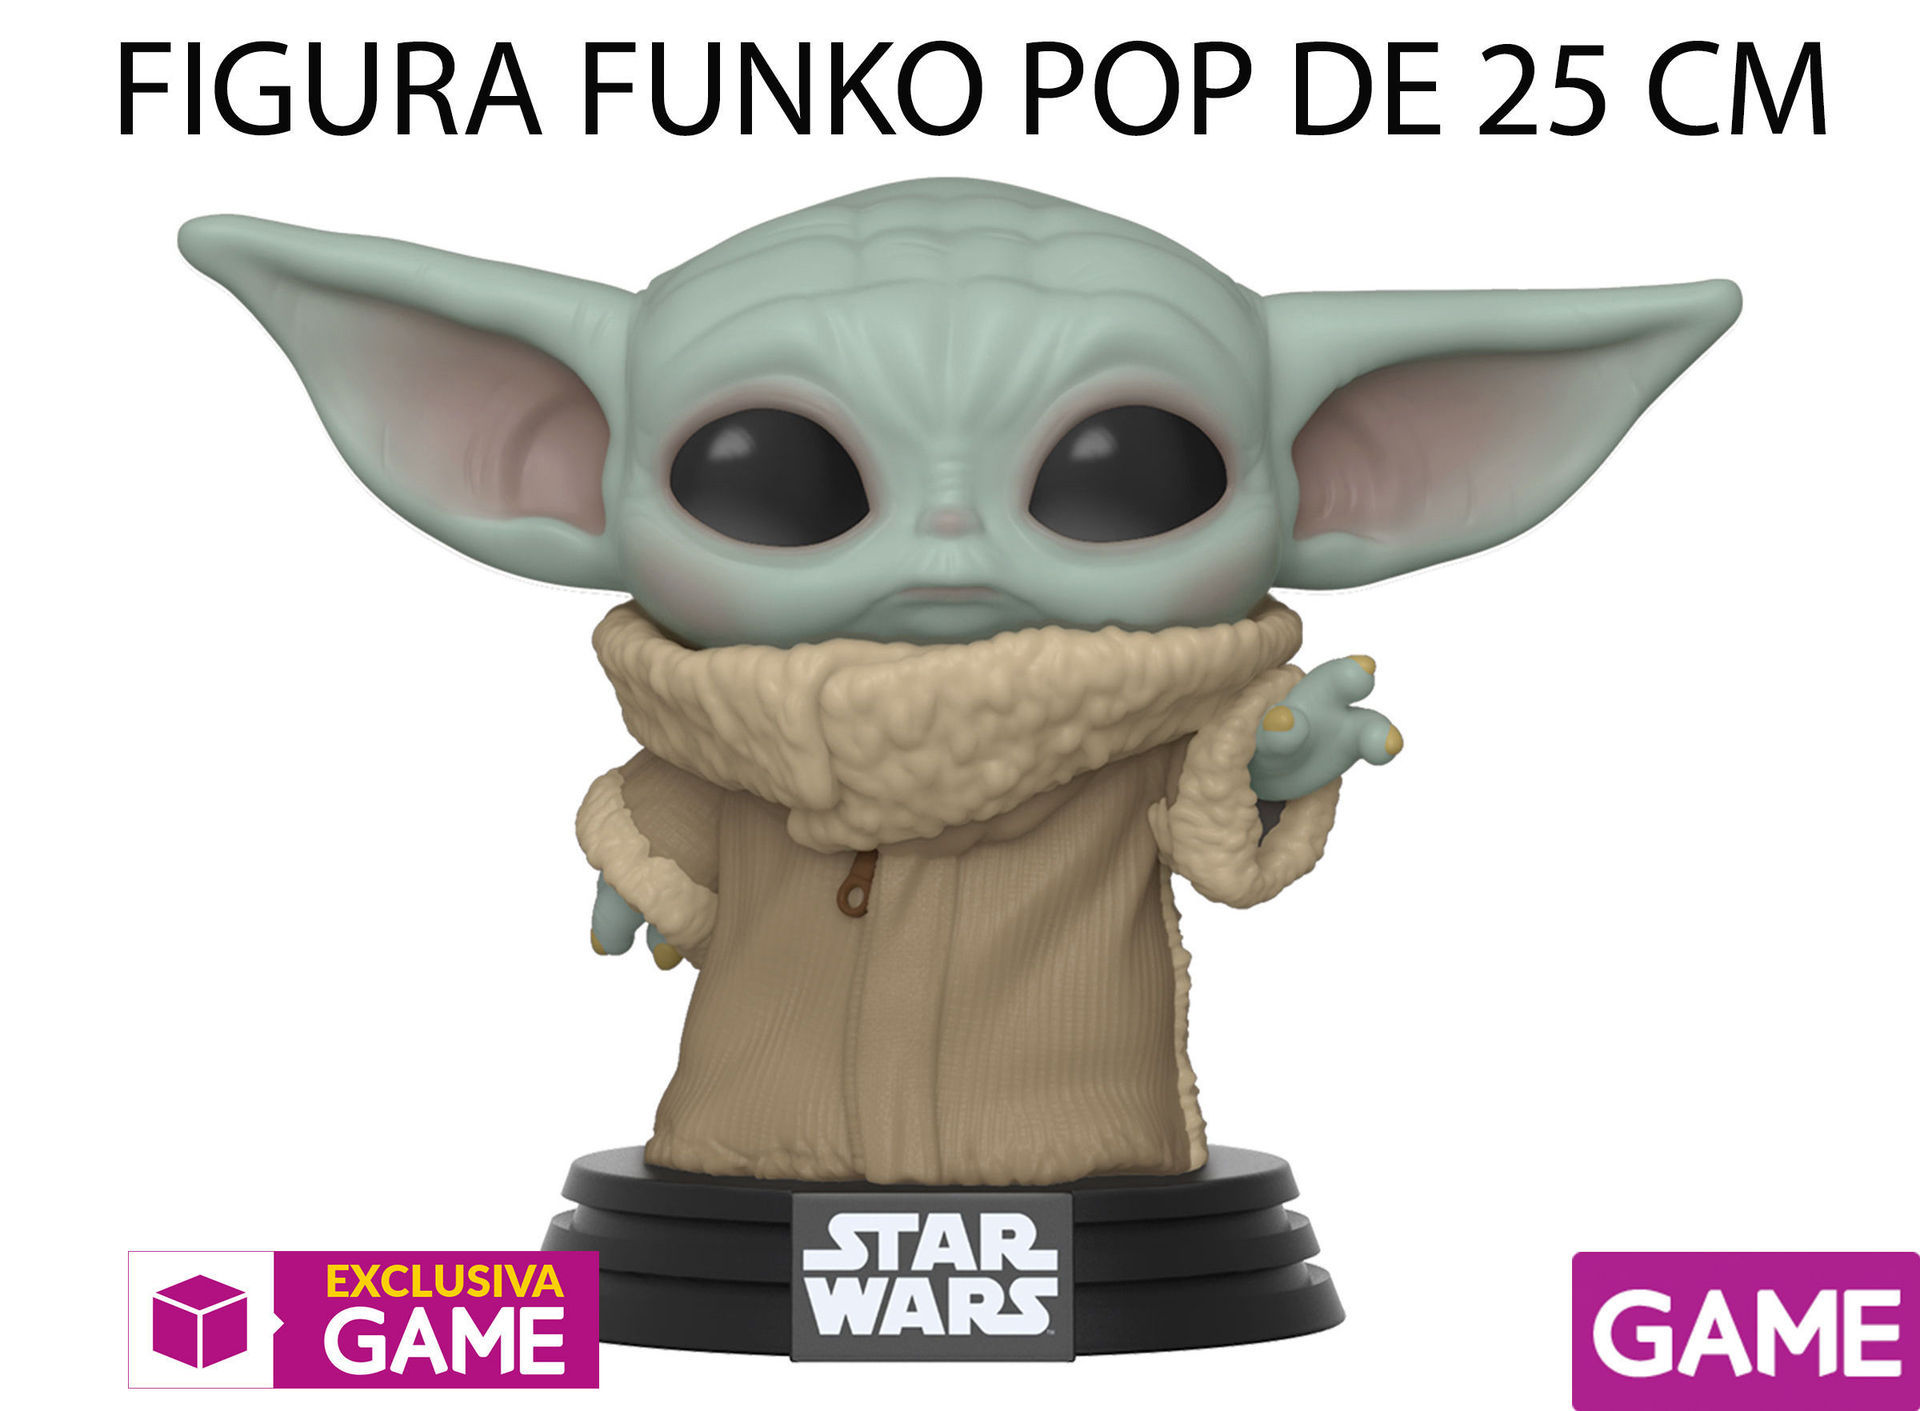 GAME presents its exclusive merchandising of Baby Yoda, The Mandalorian